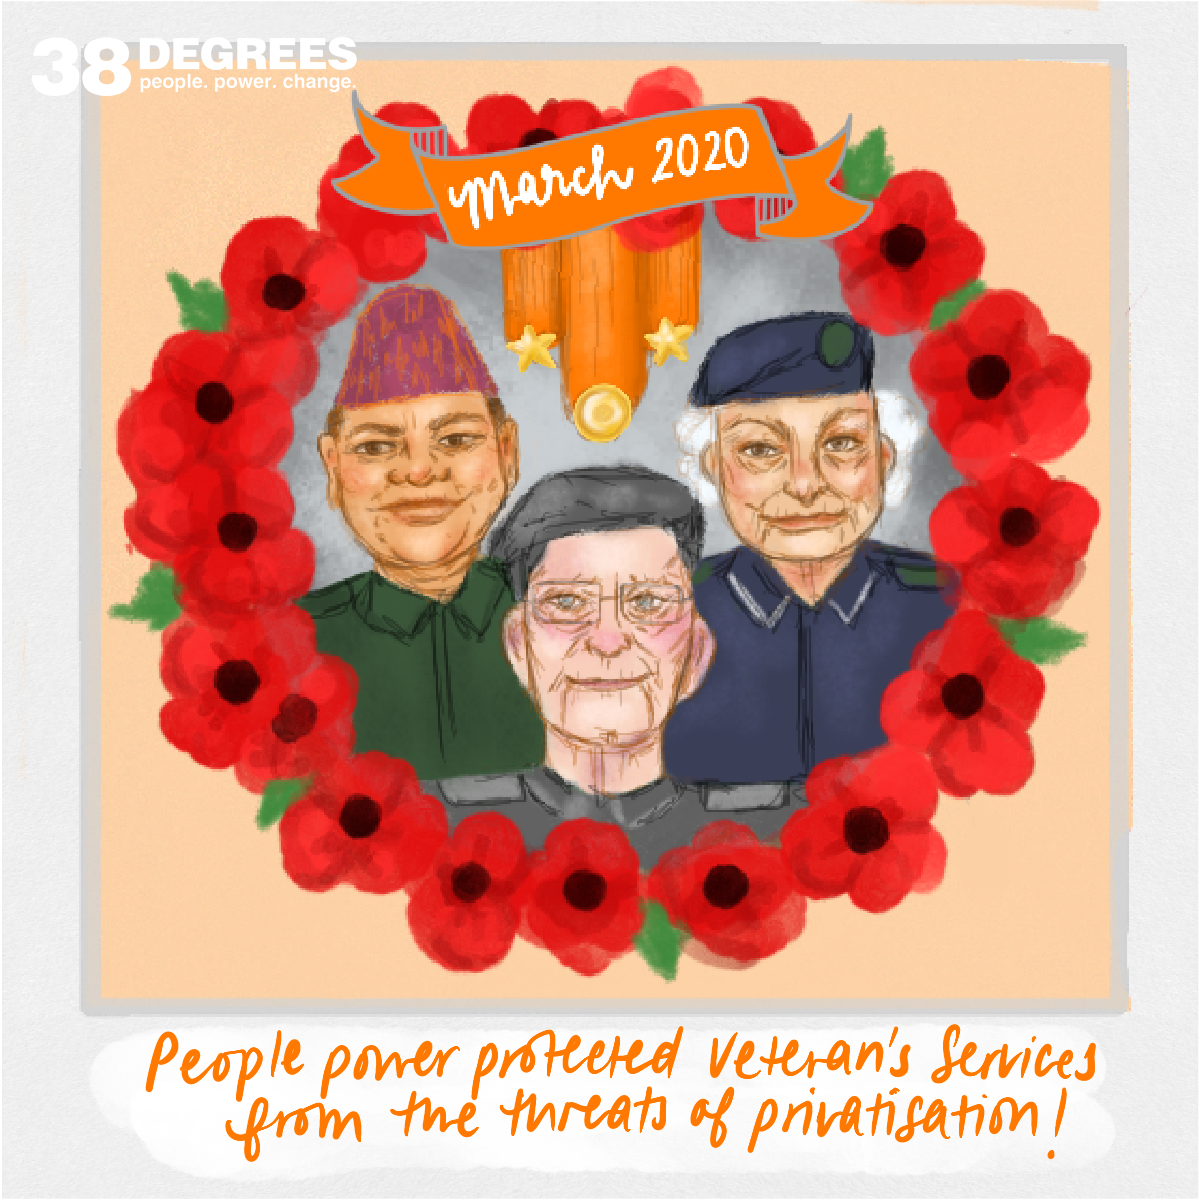 Three veterans within a circle of poppys illustration